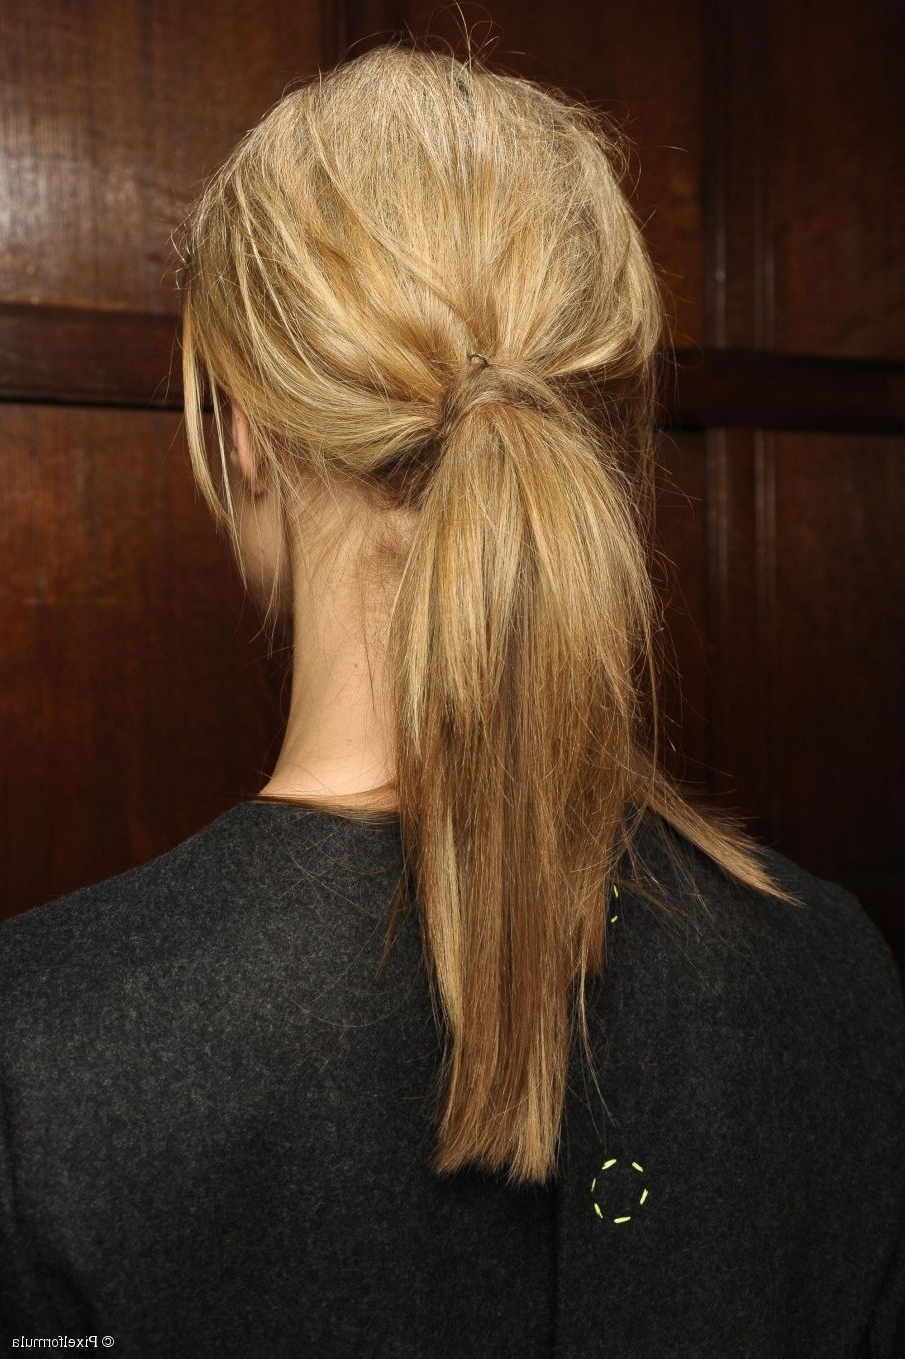 Well Known Low Ponytail Hairstyles With Waves With Valentine's Day Hairstyles: On Trend Low Ponytails (View 15 of 20)